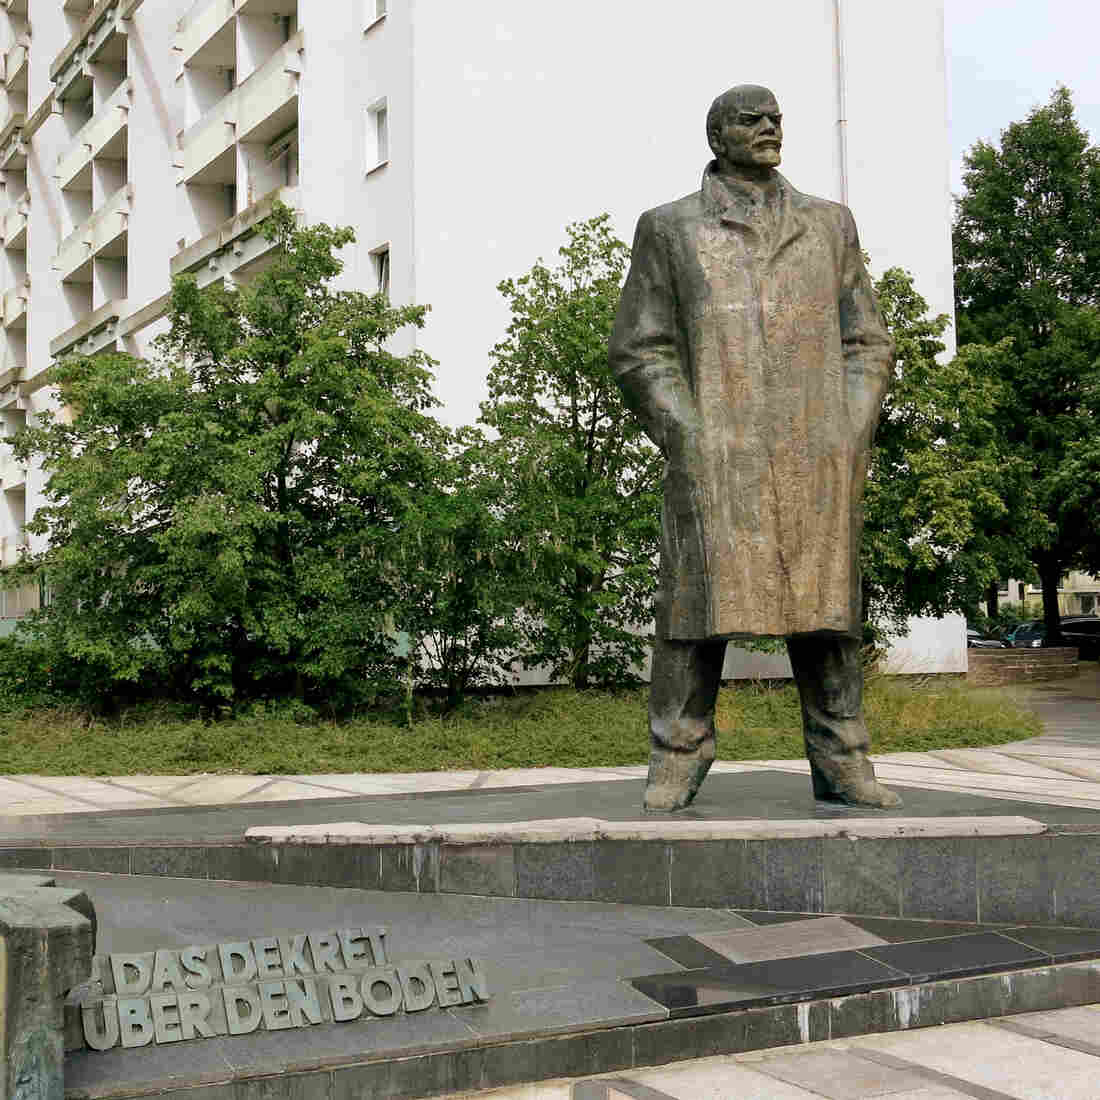 Germany's Battle Over What May Be Its Last Lenin Statue